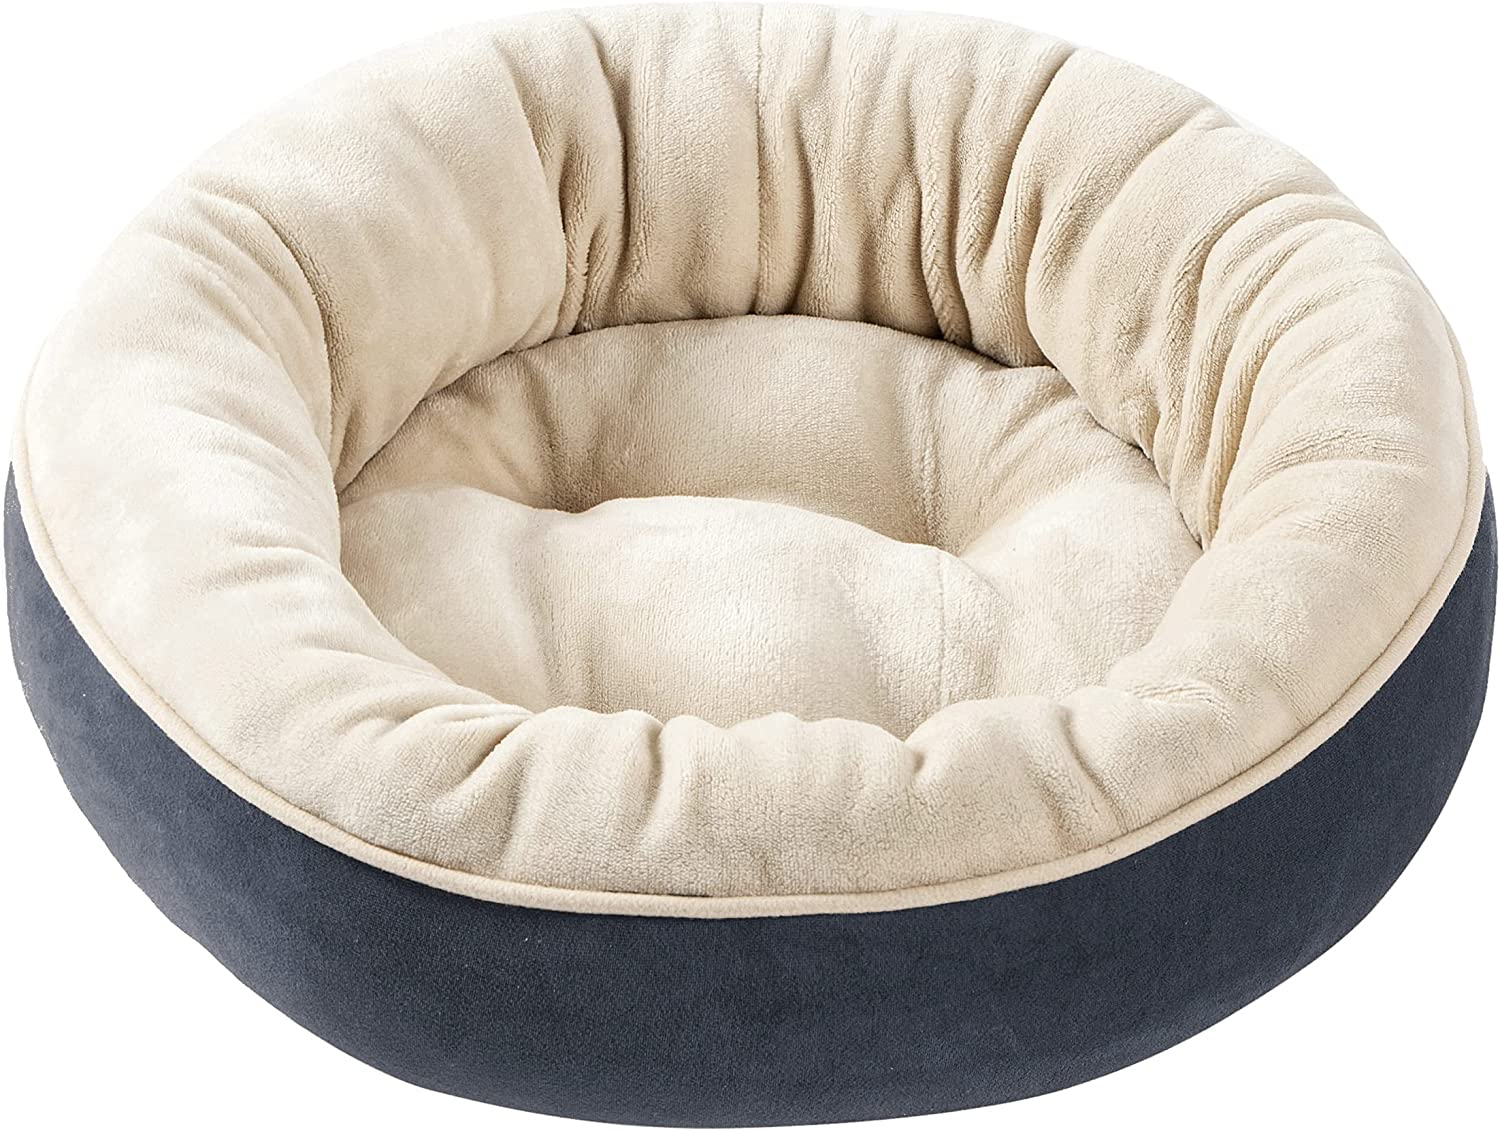 Perodo Round Max 61% OFF Bolster OFFicial site Dog or Cat Donut Supplies Pet Bed M